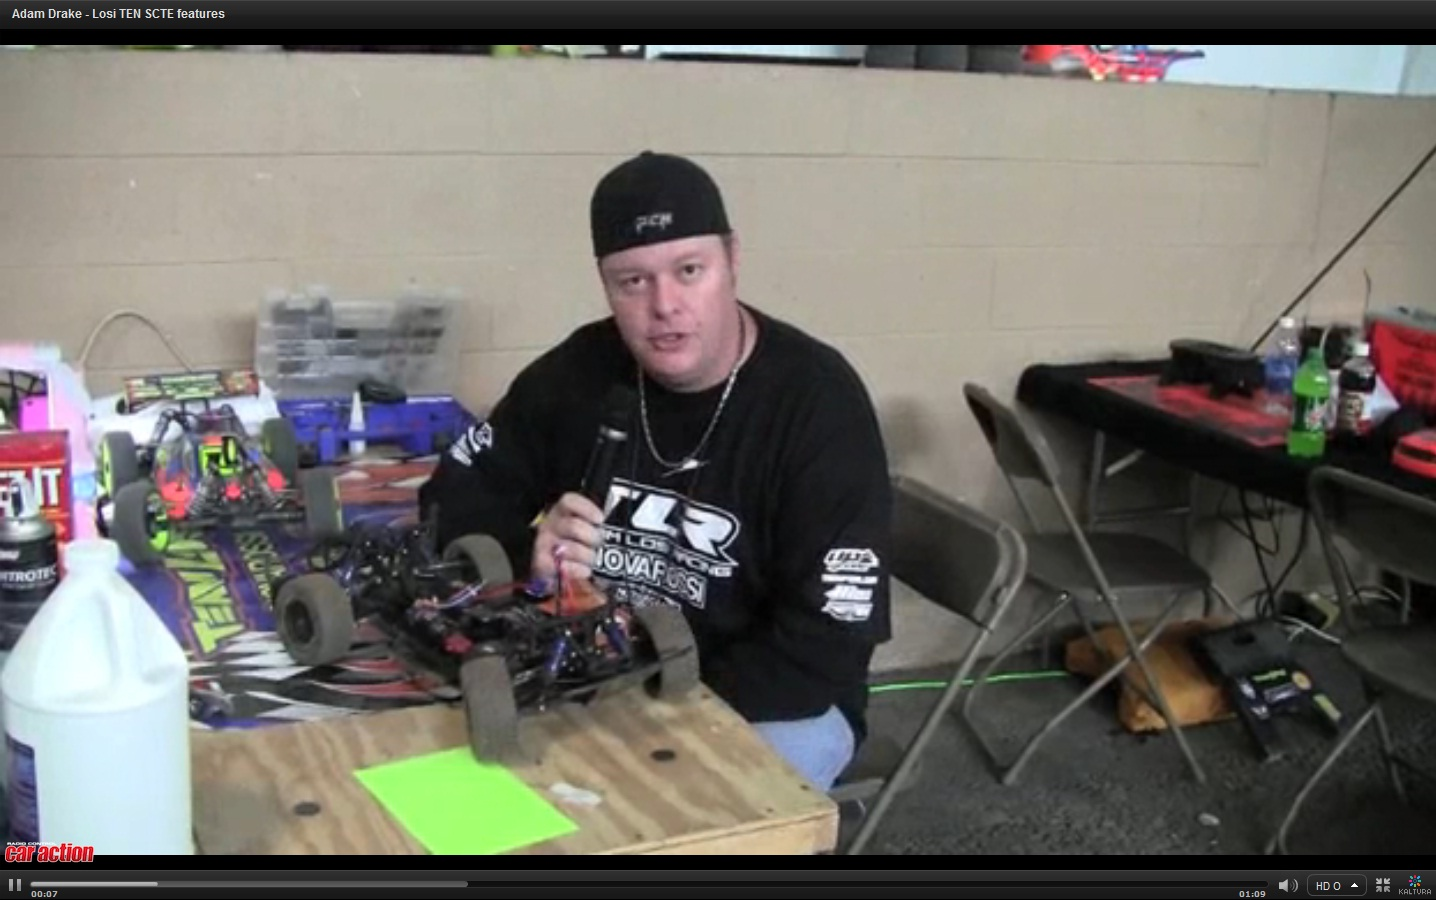 Exclusive Video: Losi's Adam Drake on Tuning the TEN-SCTE